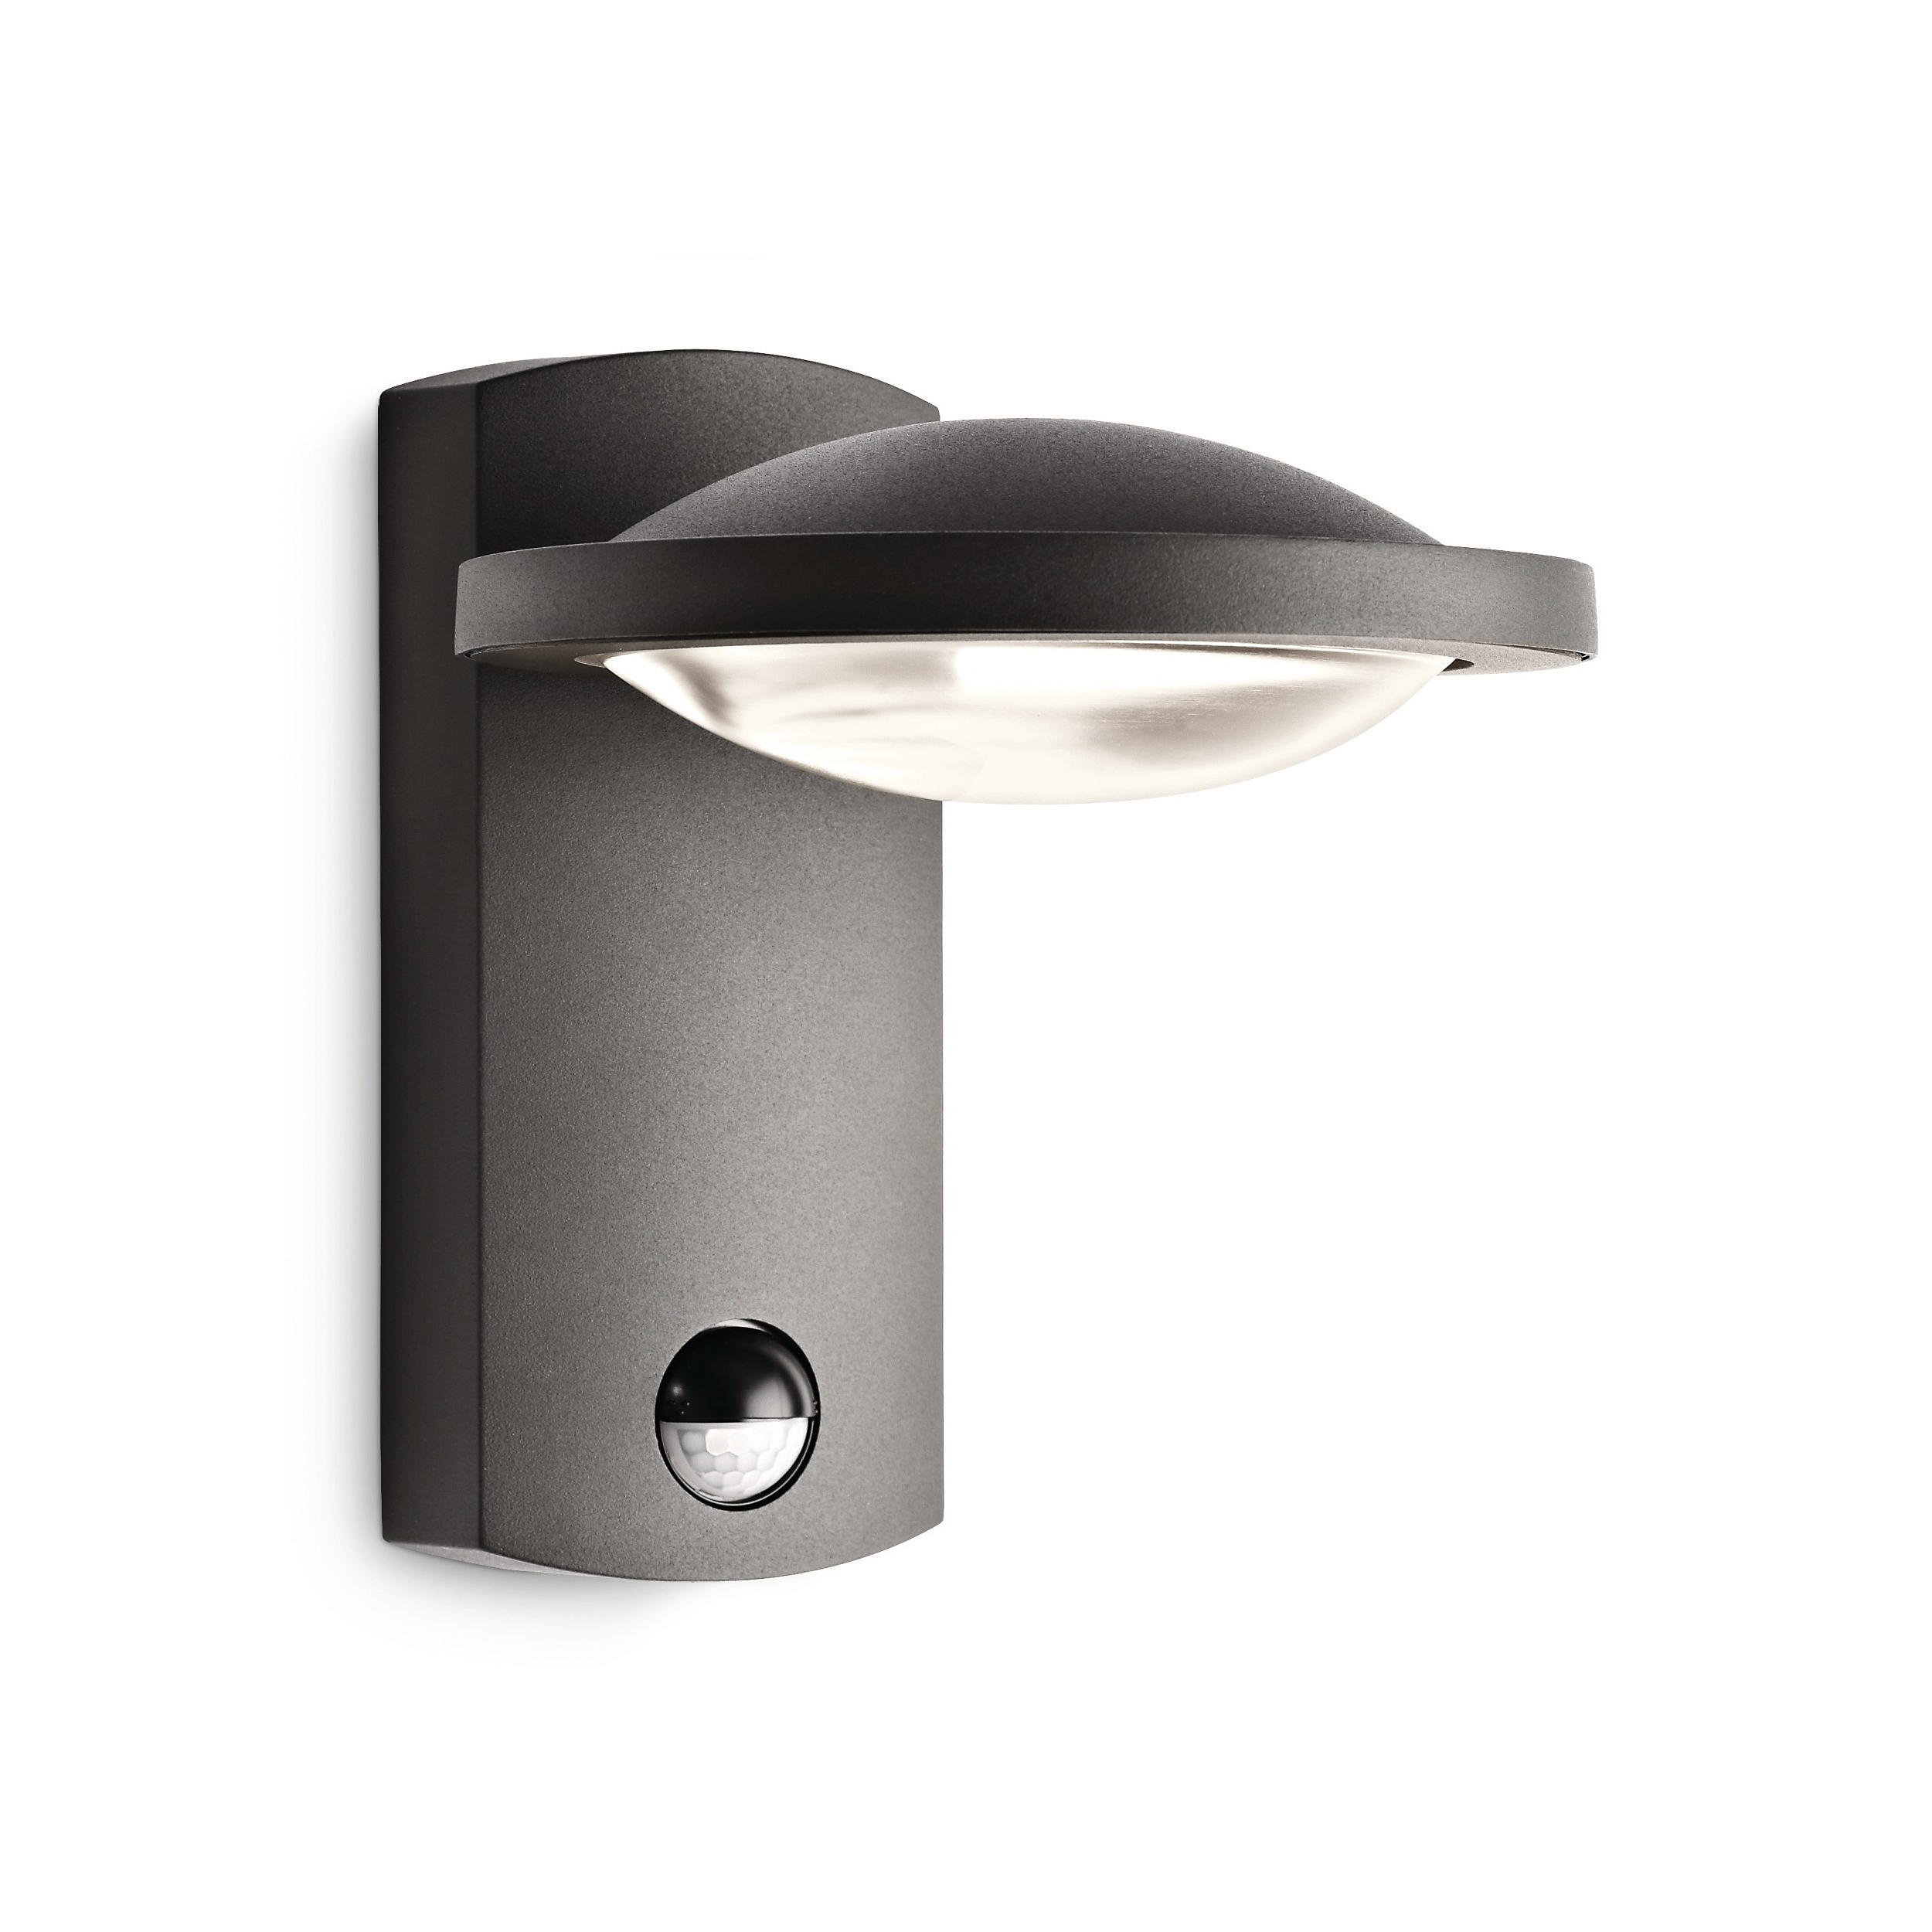 Philips ledino applique murale ext rieur moderne lampe led for Applique murale exterieur ebay